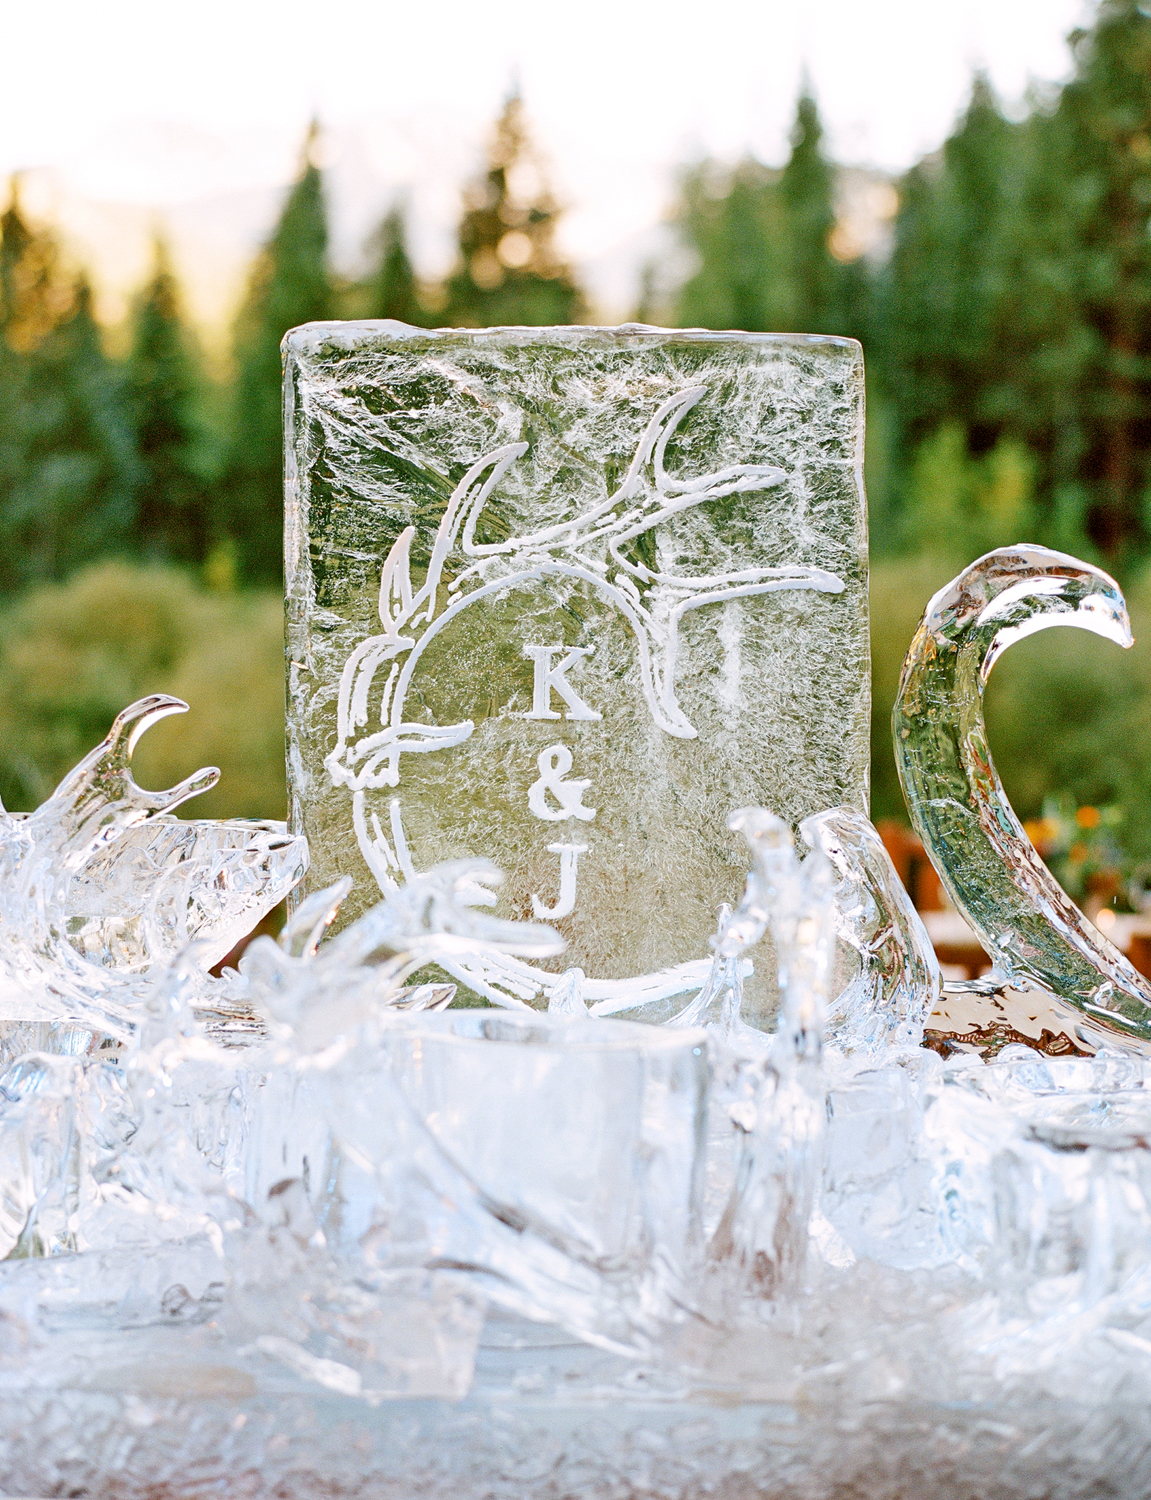 Ice bar with monogrammed logo etched in